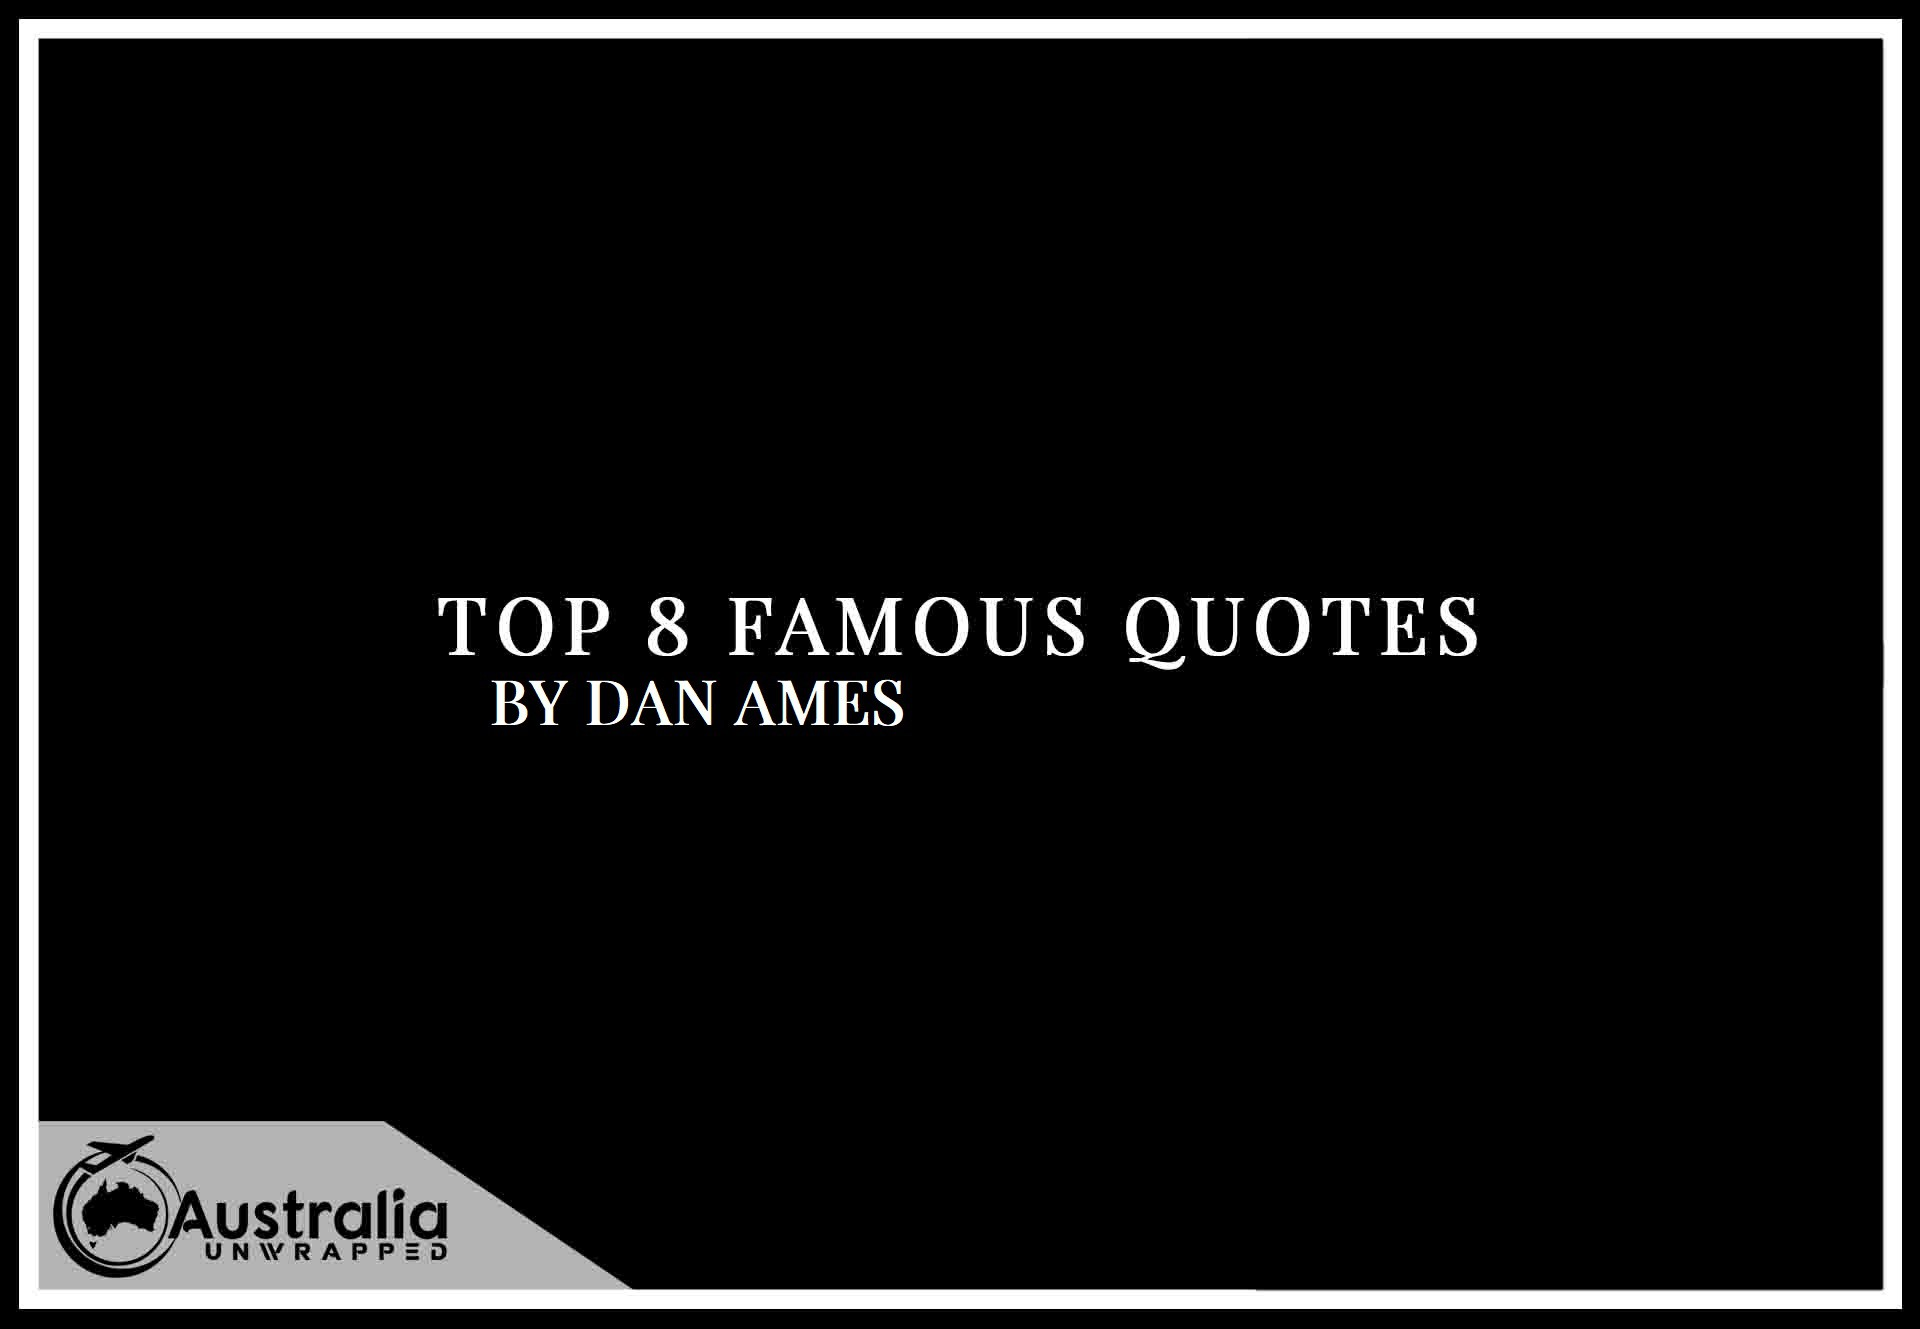 Top 8 Famous Quotes by Author Dan Ames